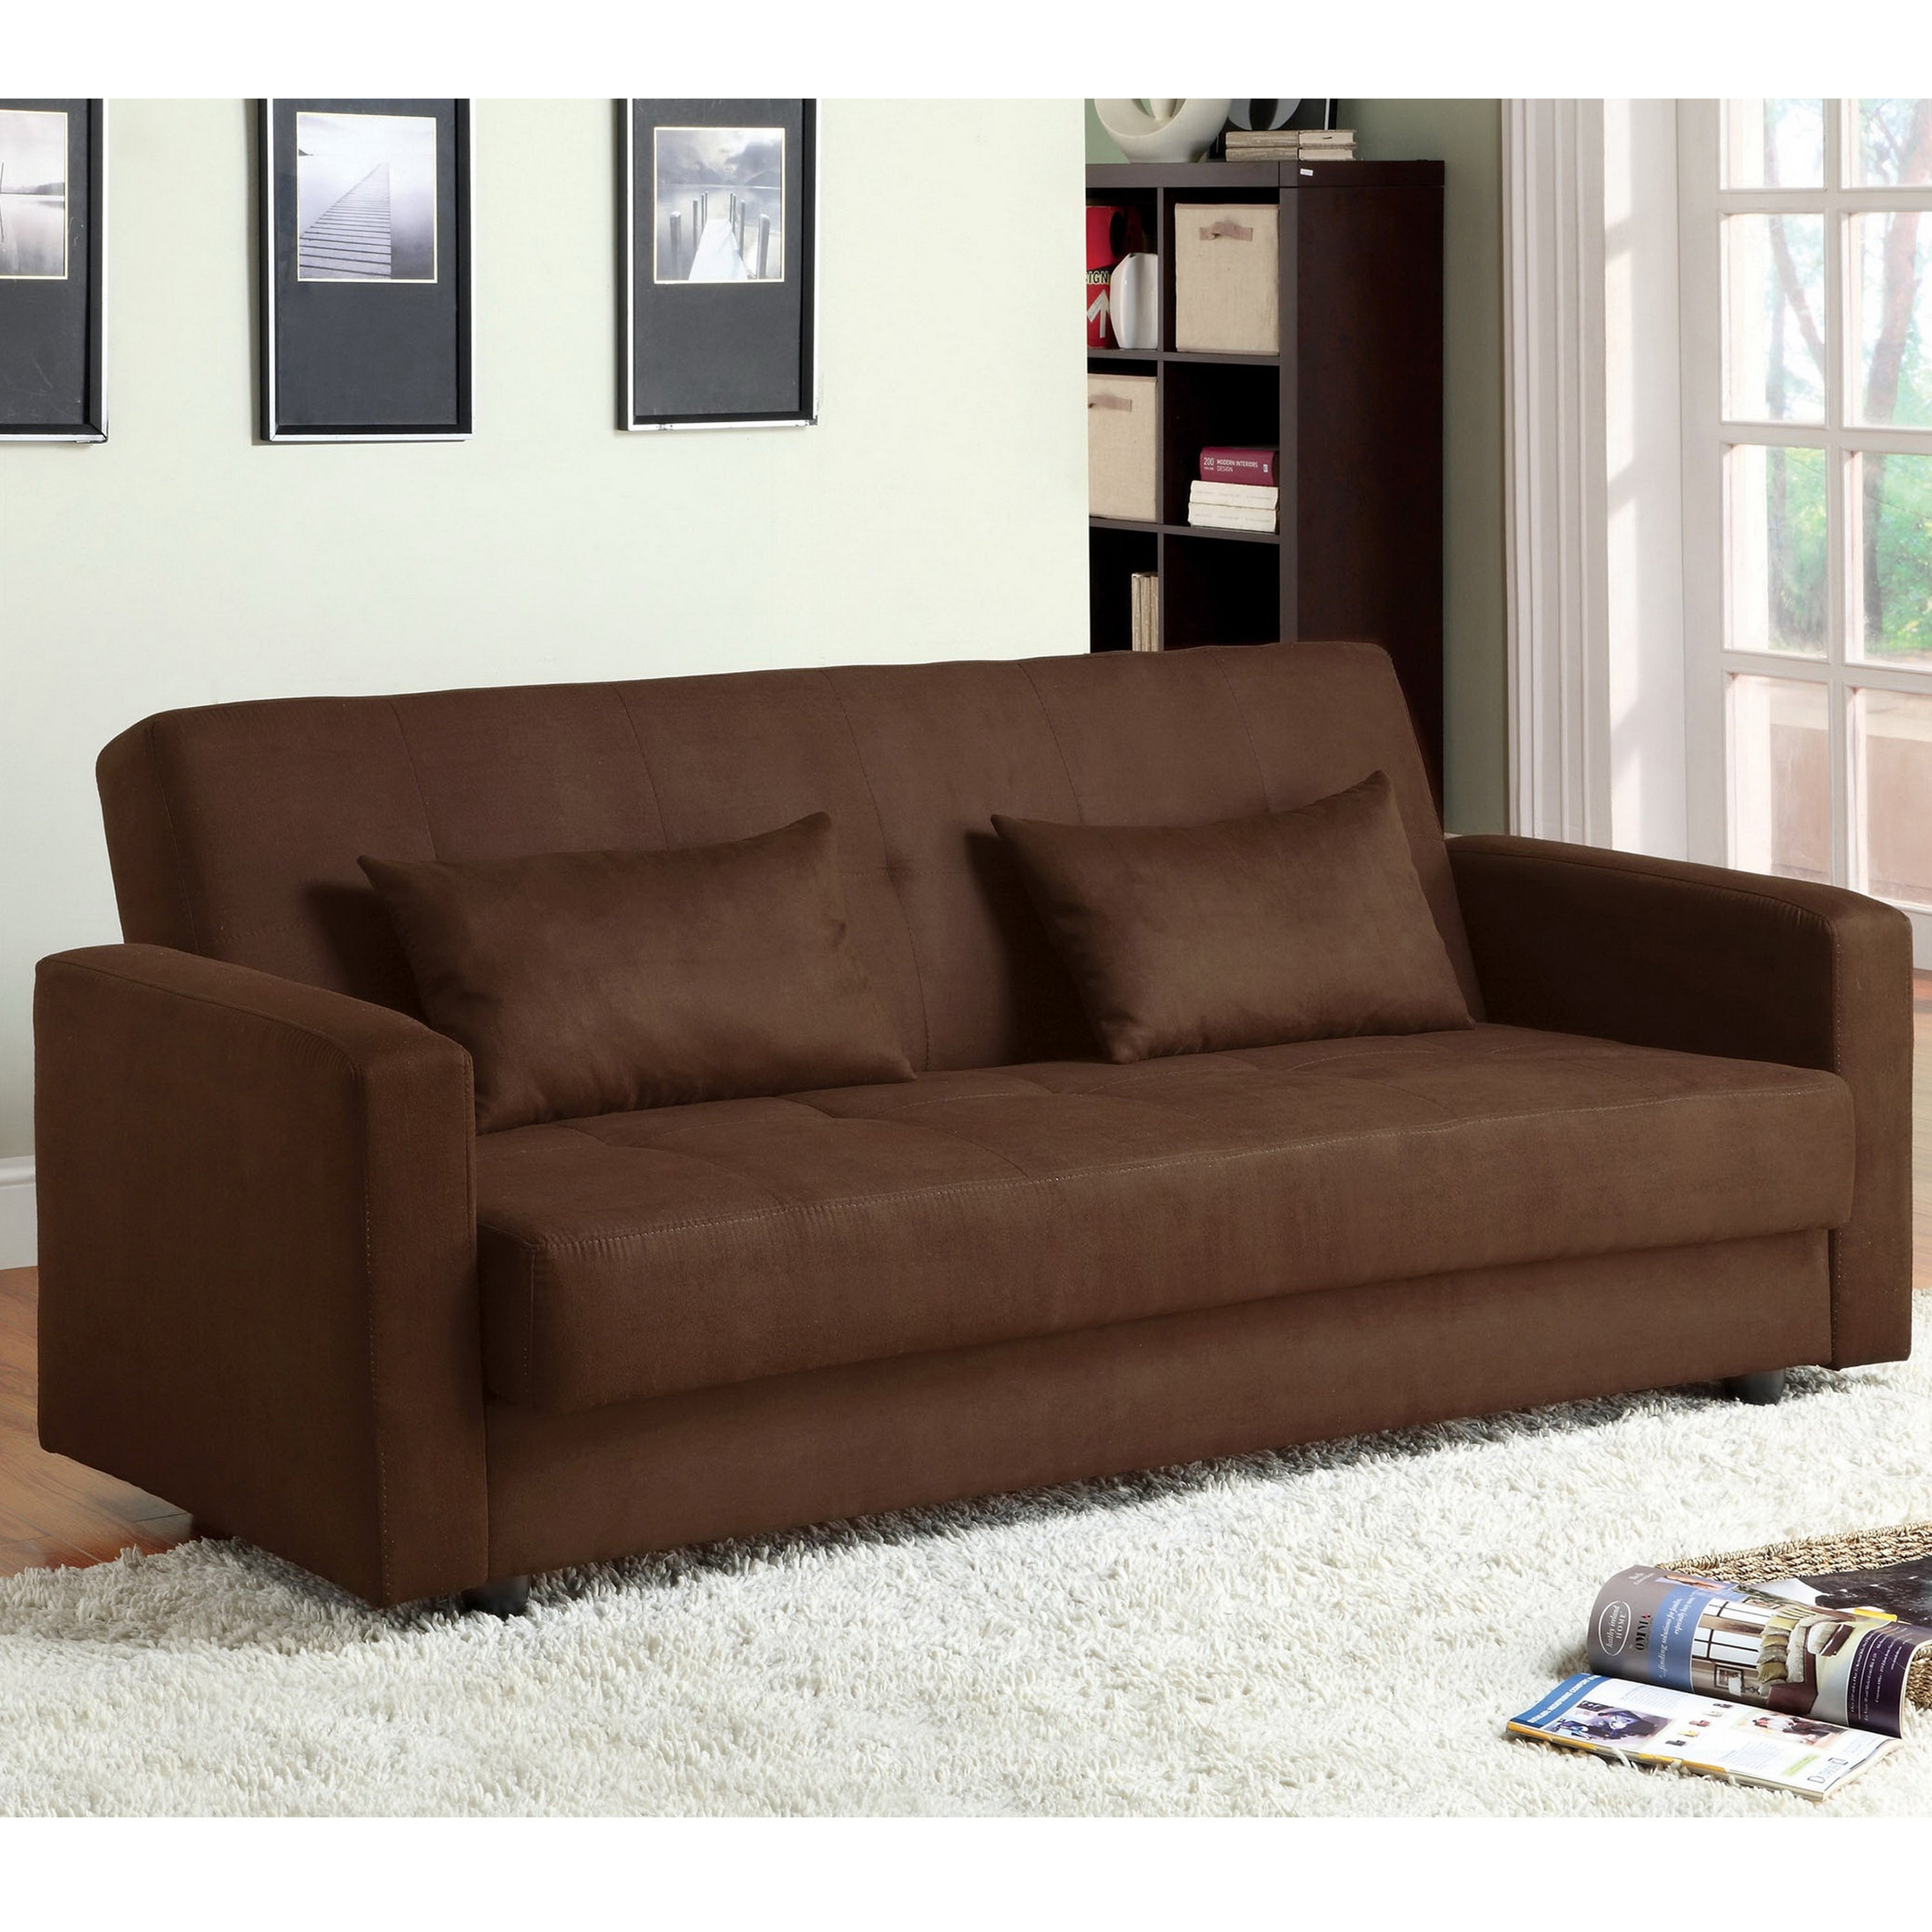 Picture of: Furniture Of America Cozy Contemporary Brown Fabric Futon Sofa Bed Overstock 6626826